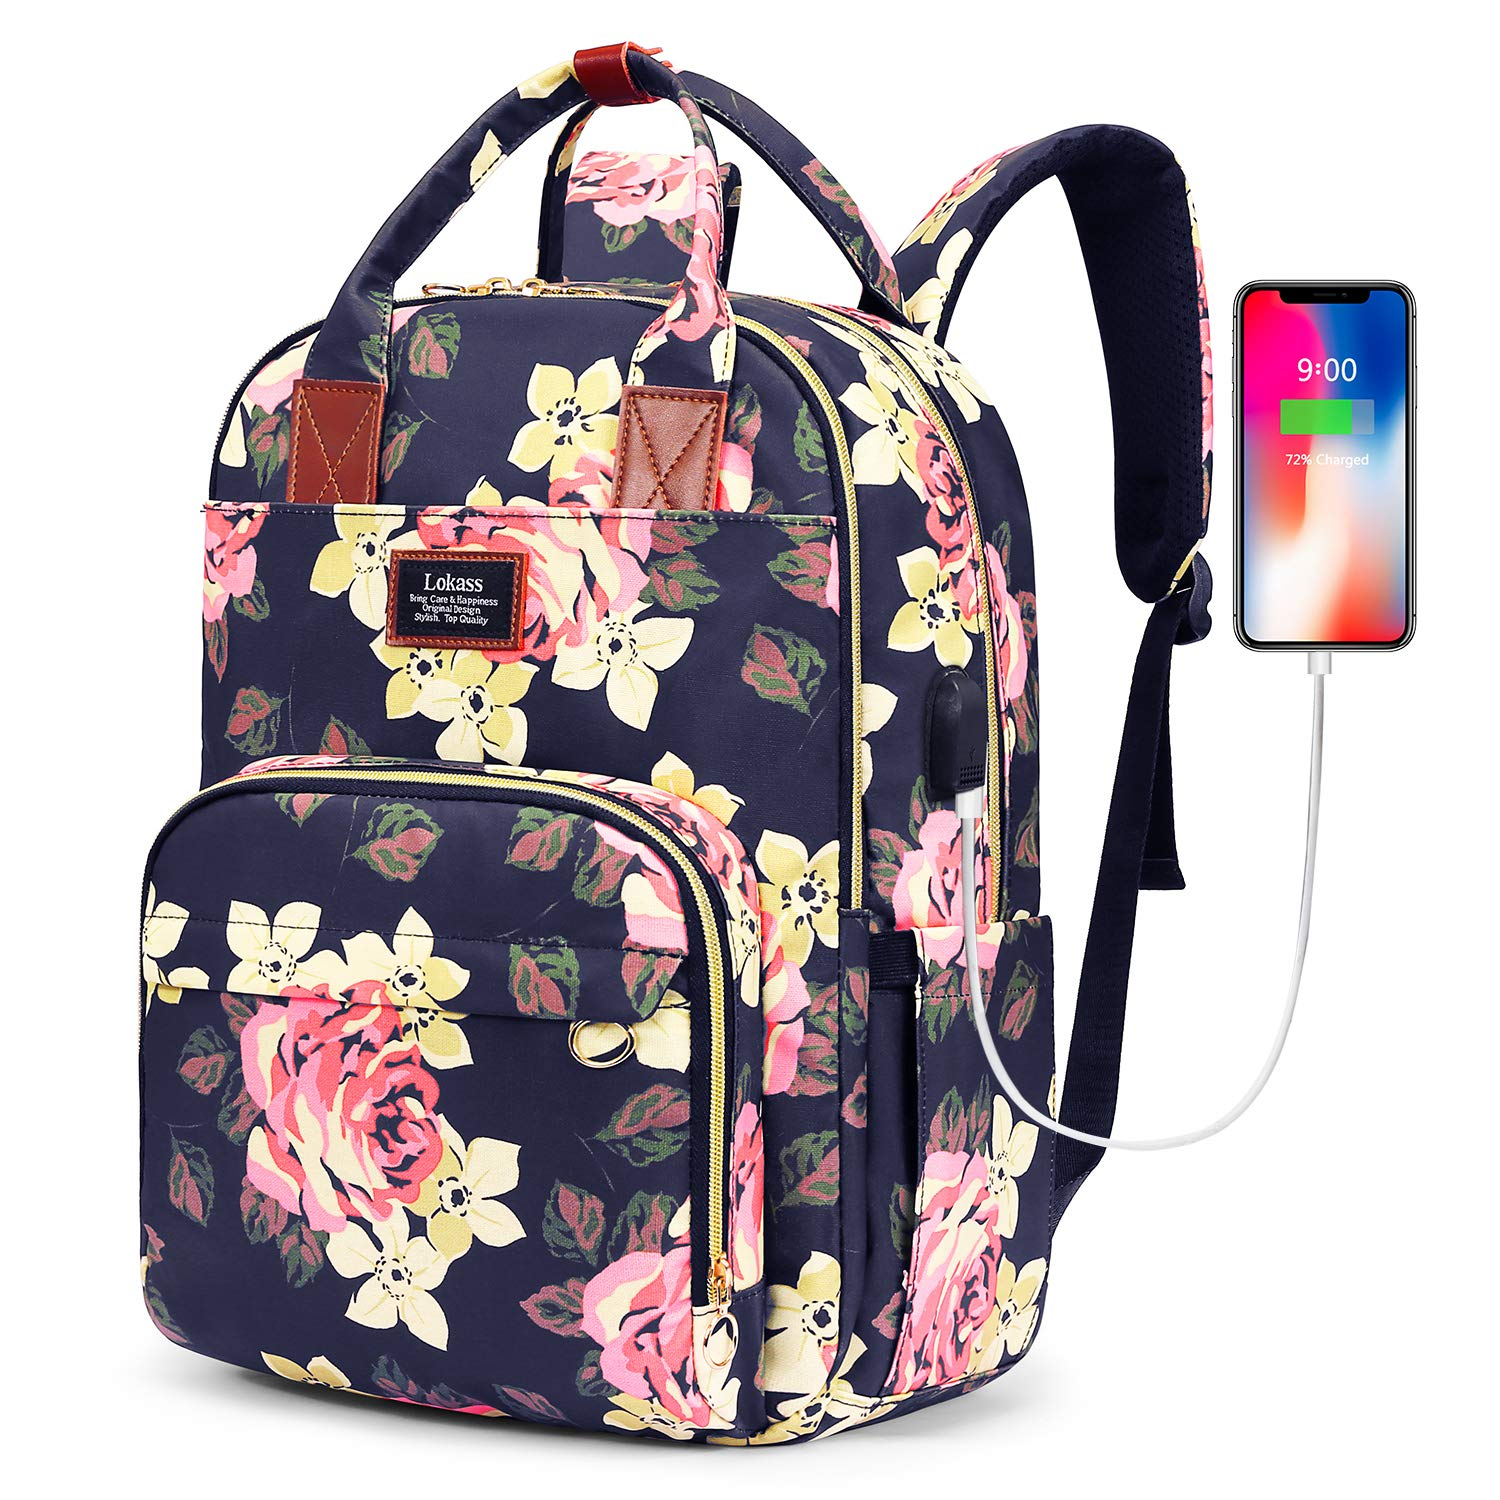 SOCKO Laptop Backpack for Women Floral Hiking Backpack Nylon Travel Backpack with USB Charging Port Wter-Resistant School Backpack Fits 15.6 Inches Laptop (Peony Flower) by SOCKO